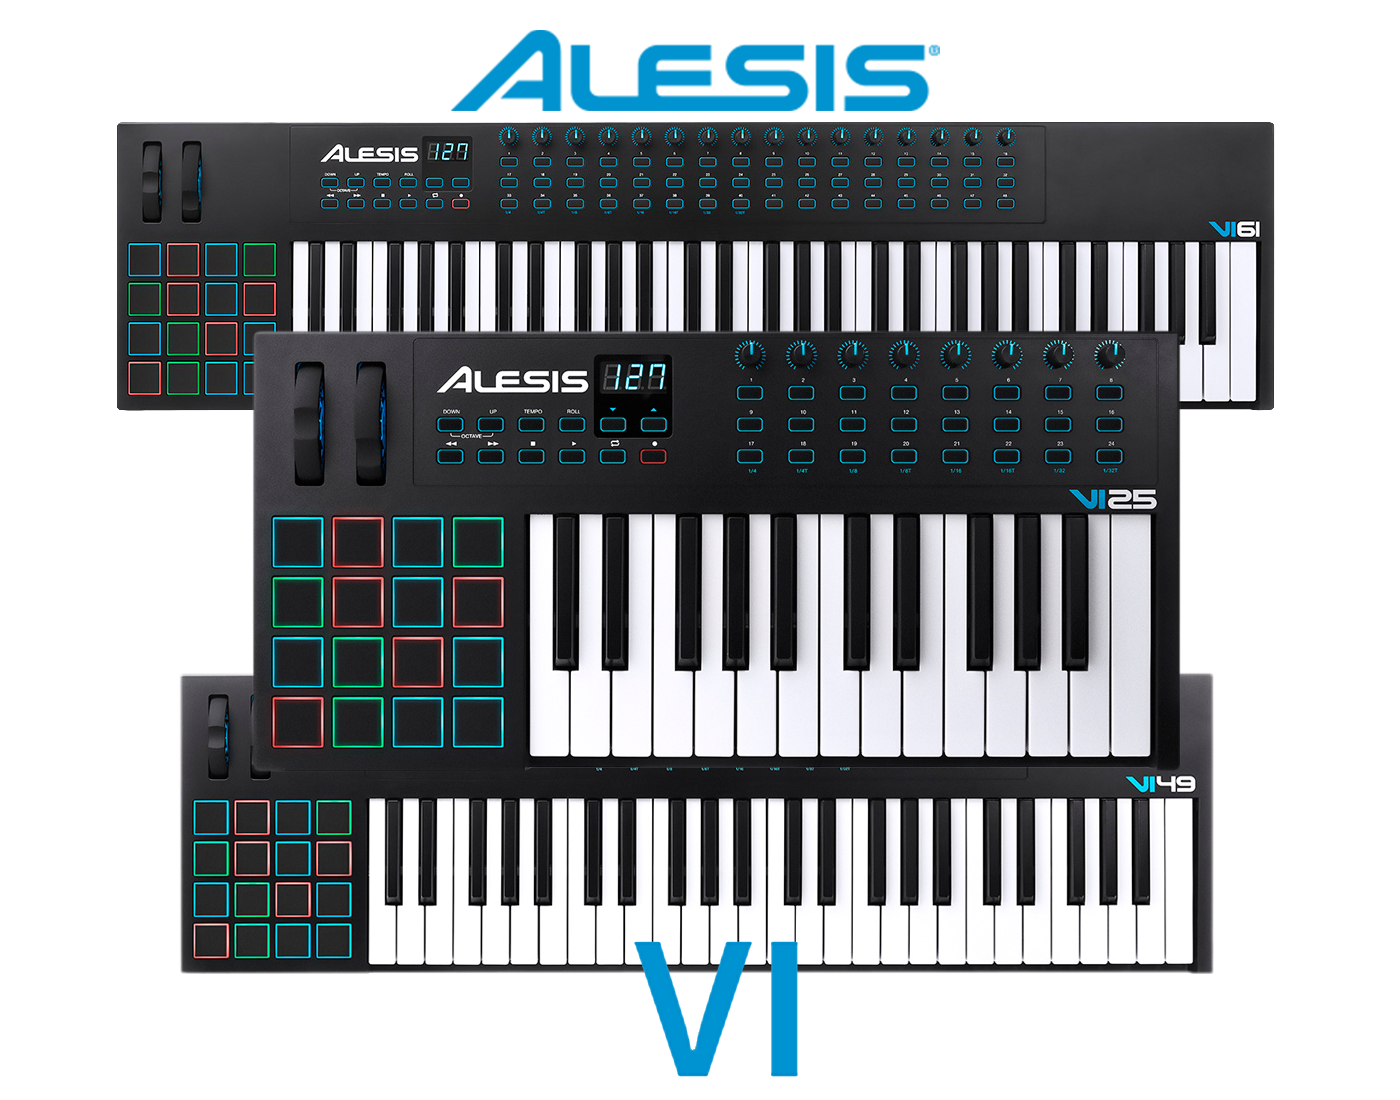 alesis viseries main